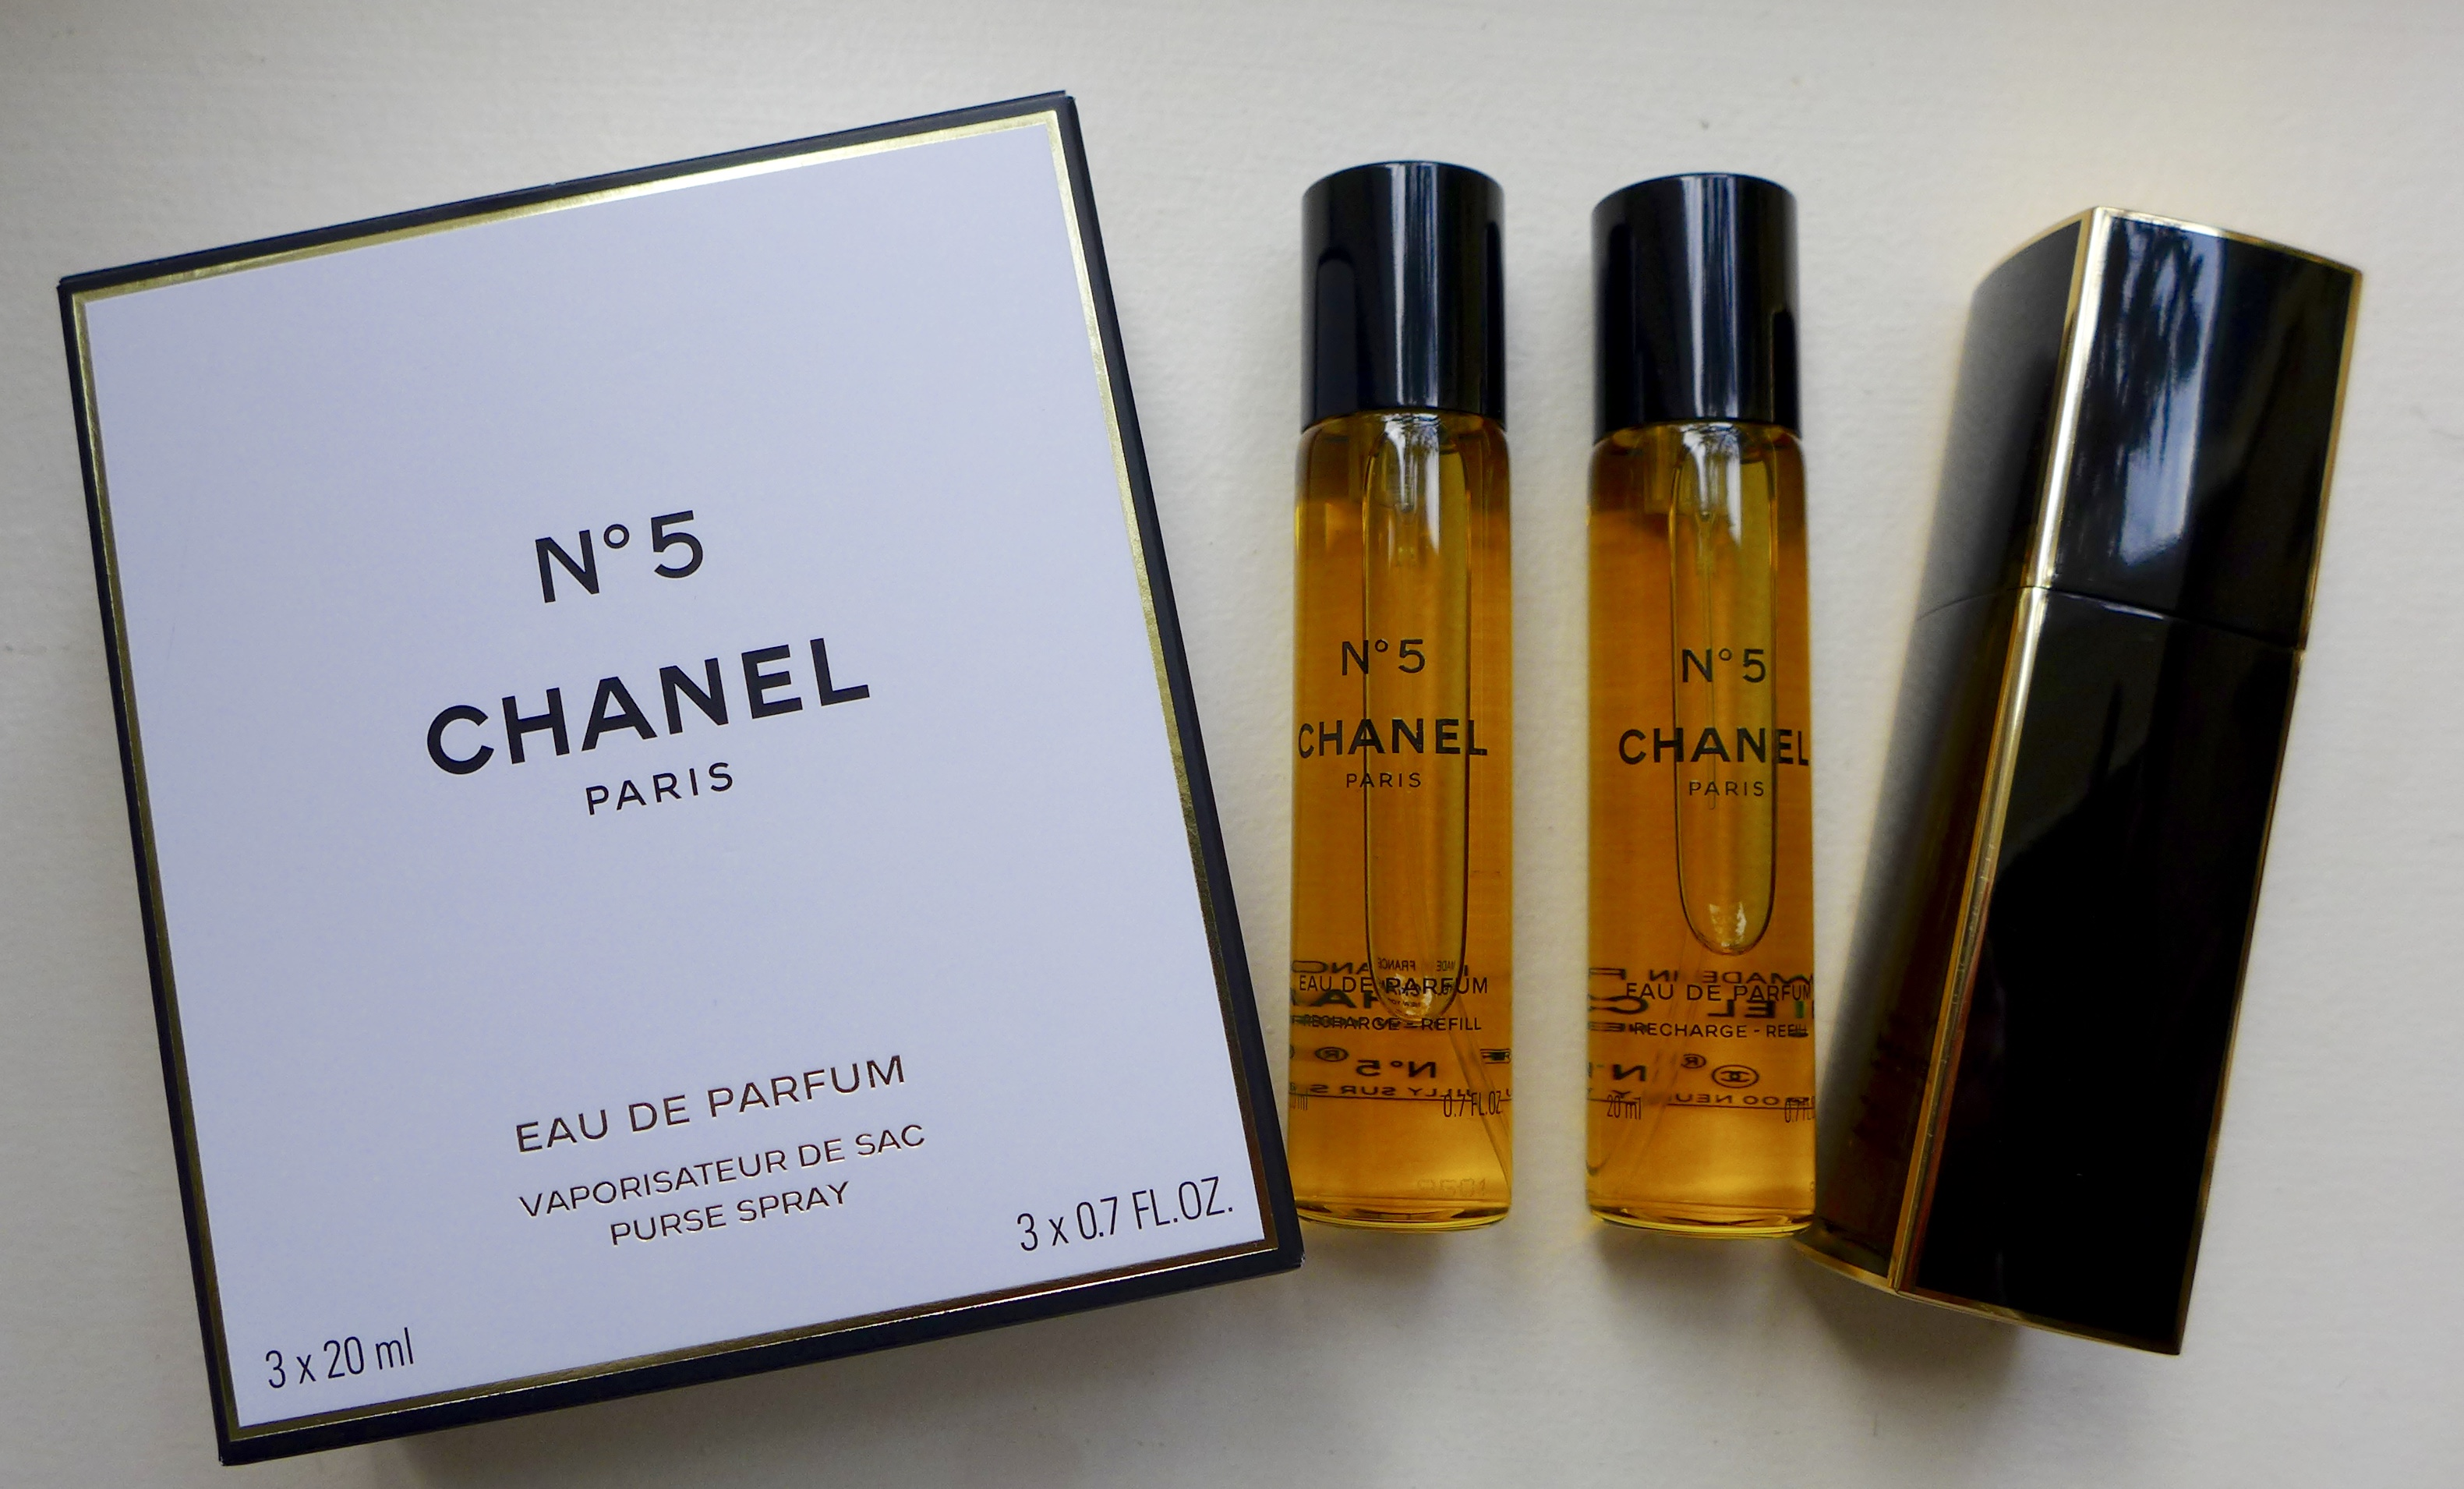 71c69e96d751 Chanel No 5 Eau de Parfum Photograph: GRACIE